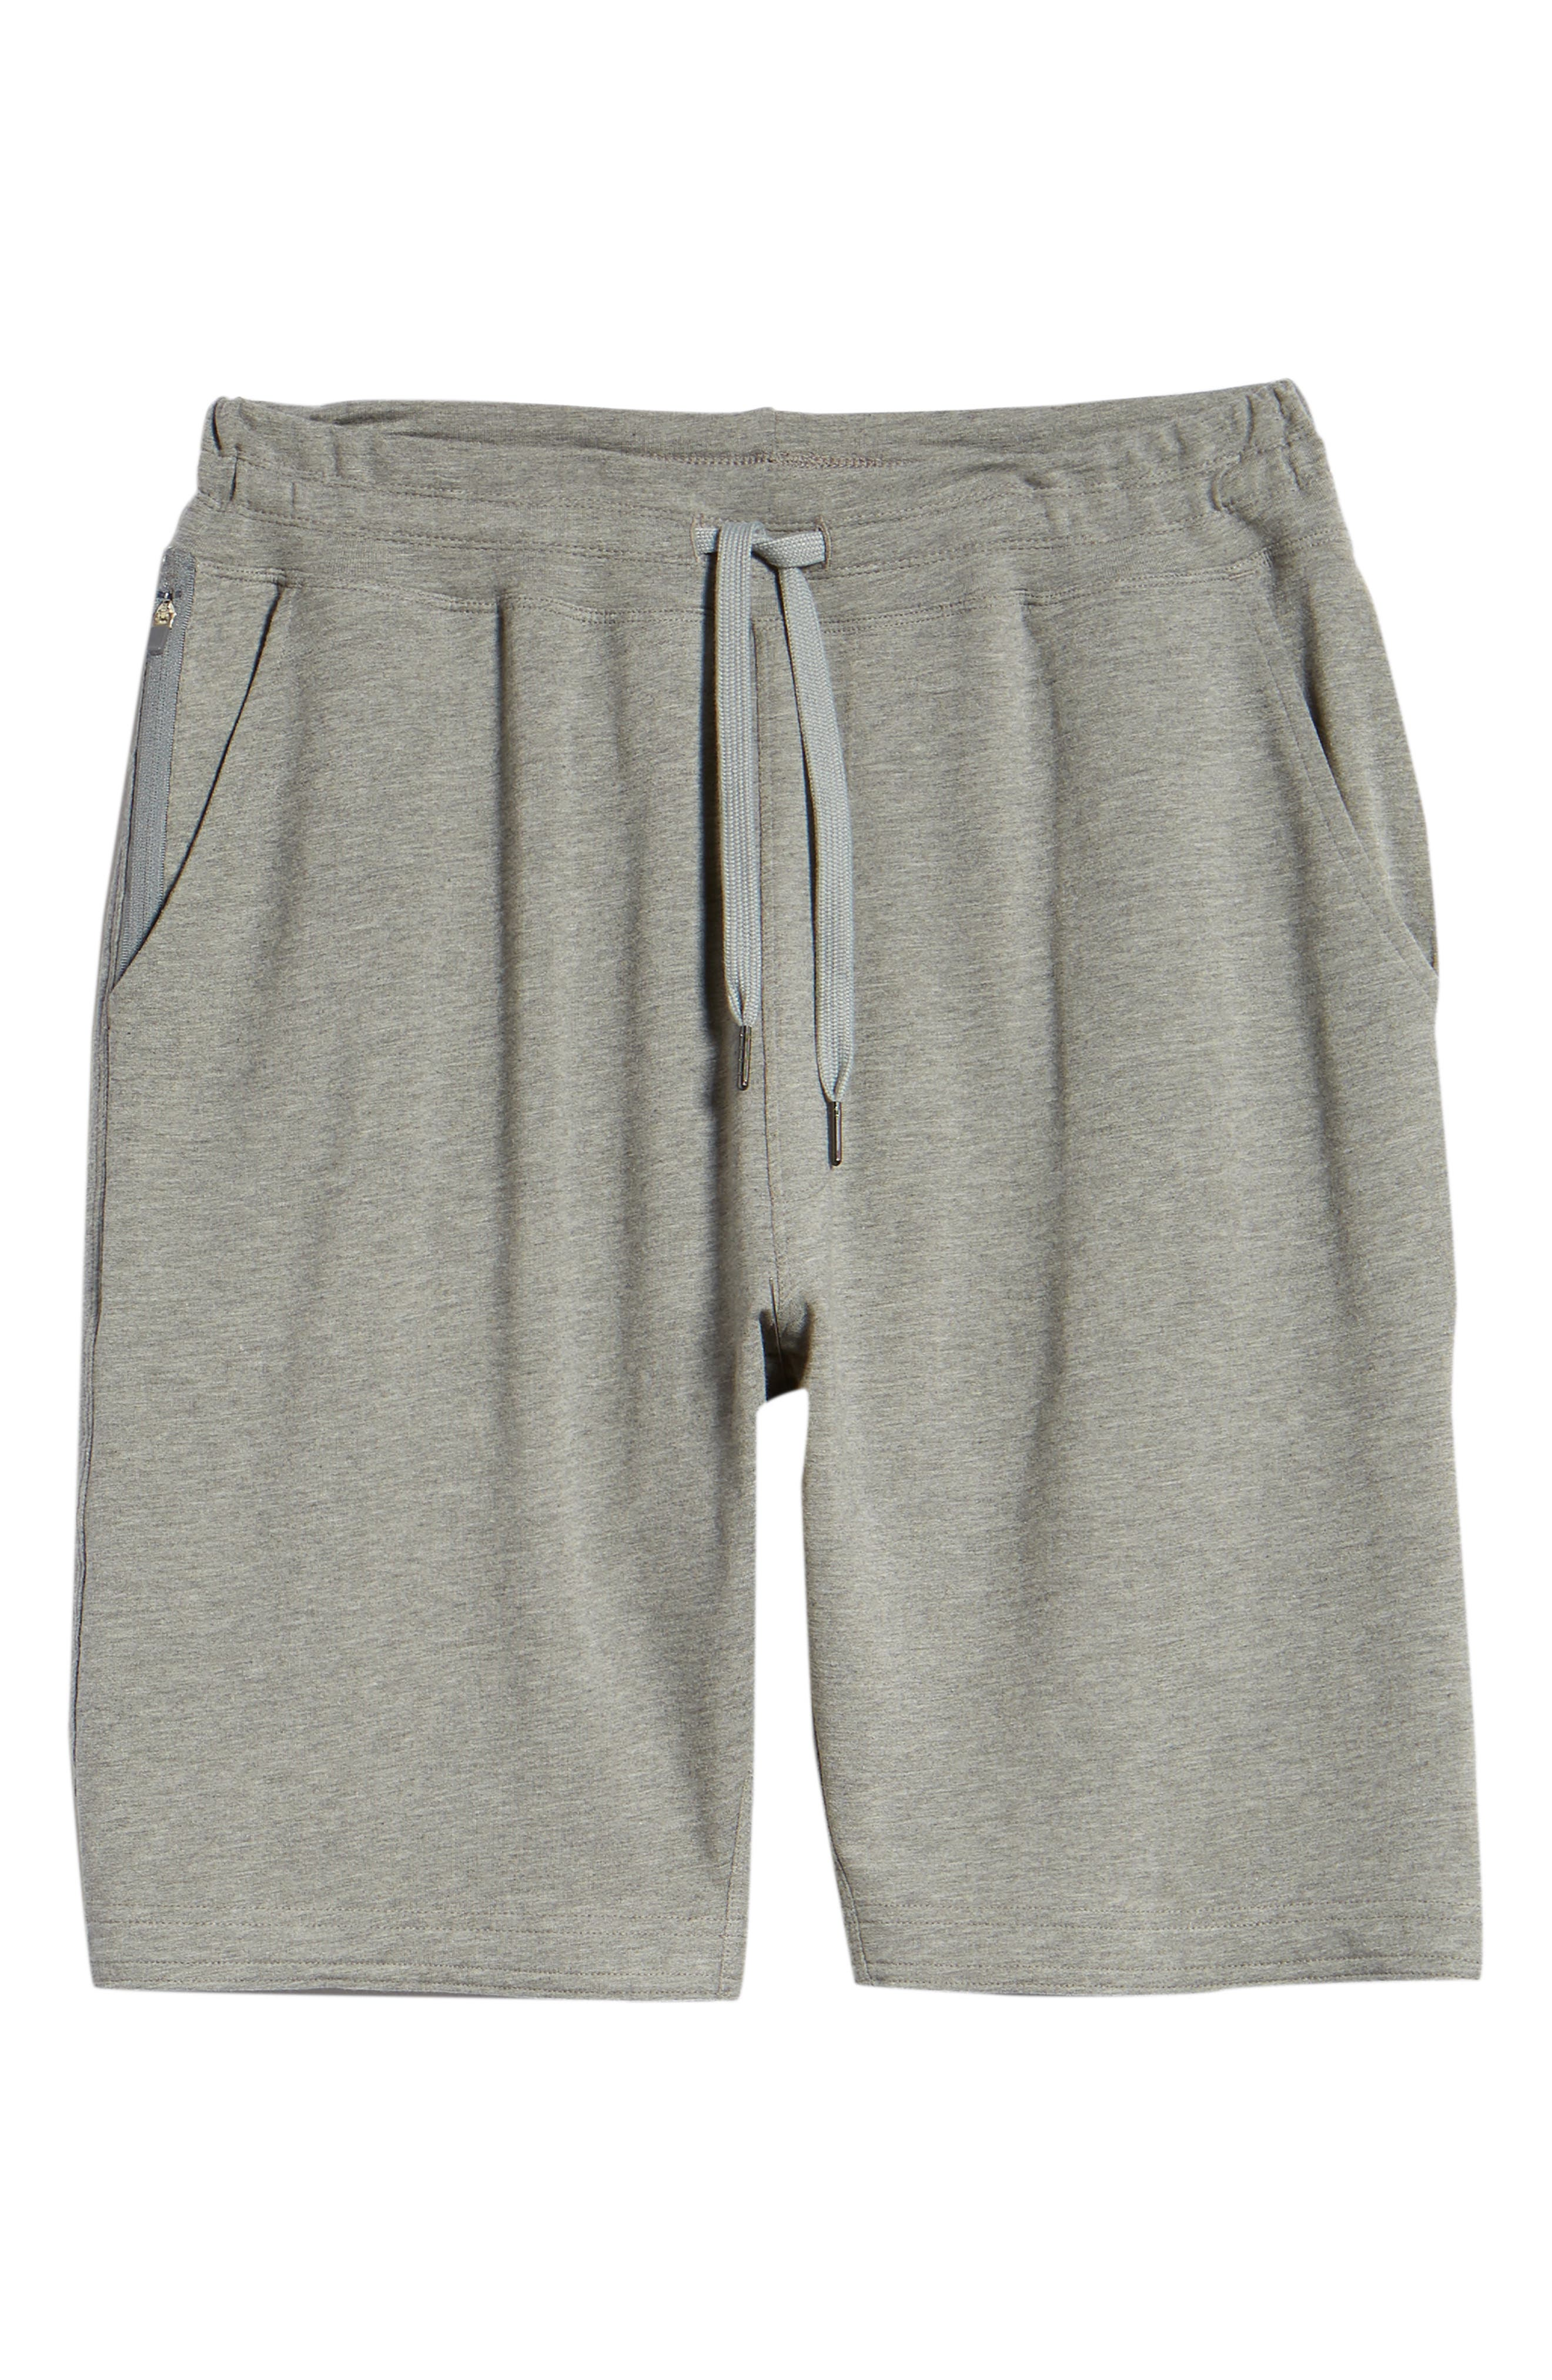 Legacy II Semi-Fitted Knit Athletic Shorts,                             Alternate thumbnail 6, color,                             HEATHER GRAY